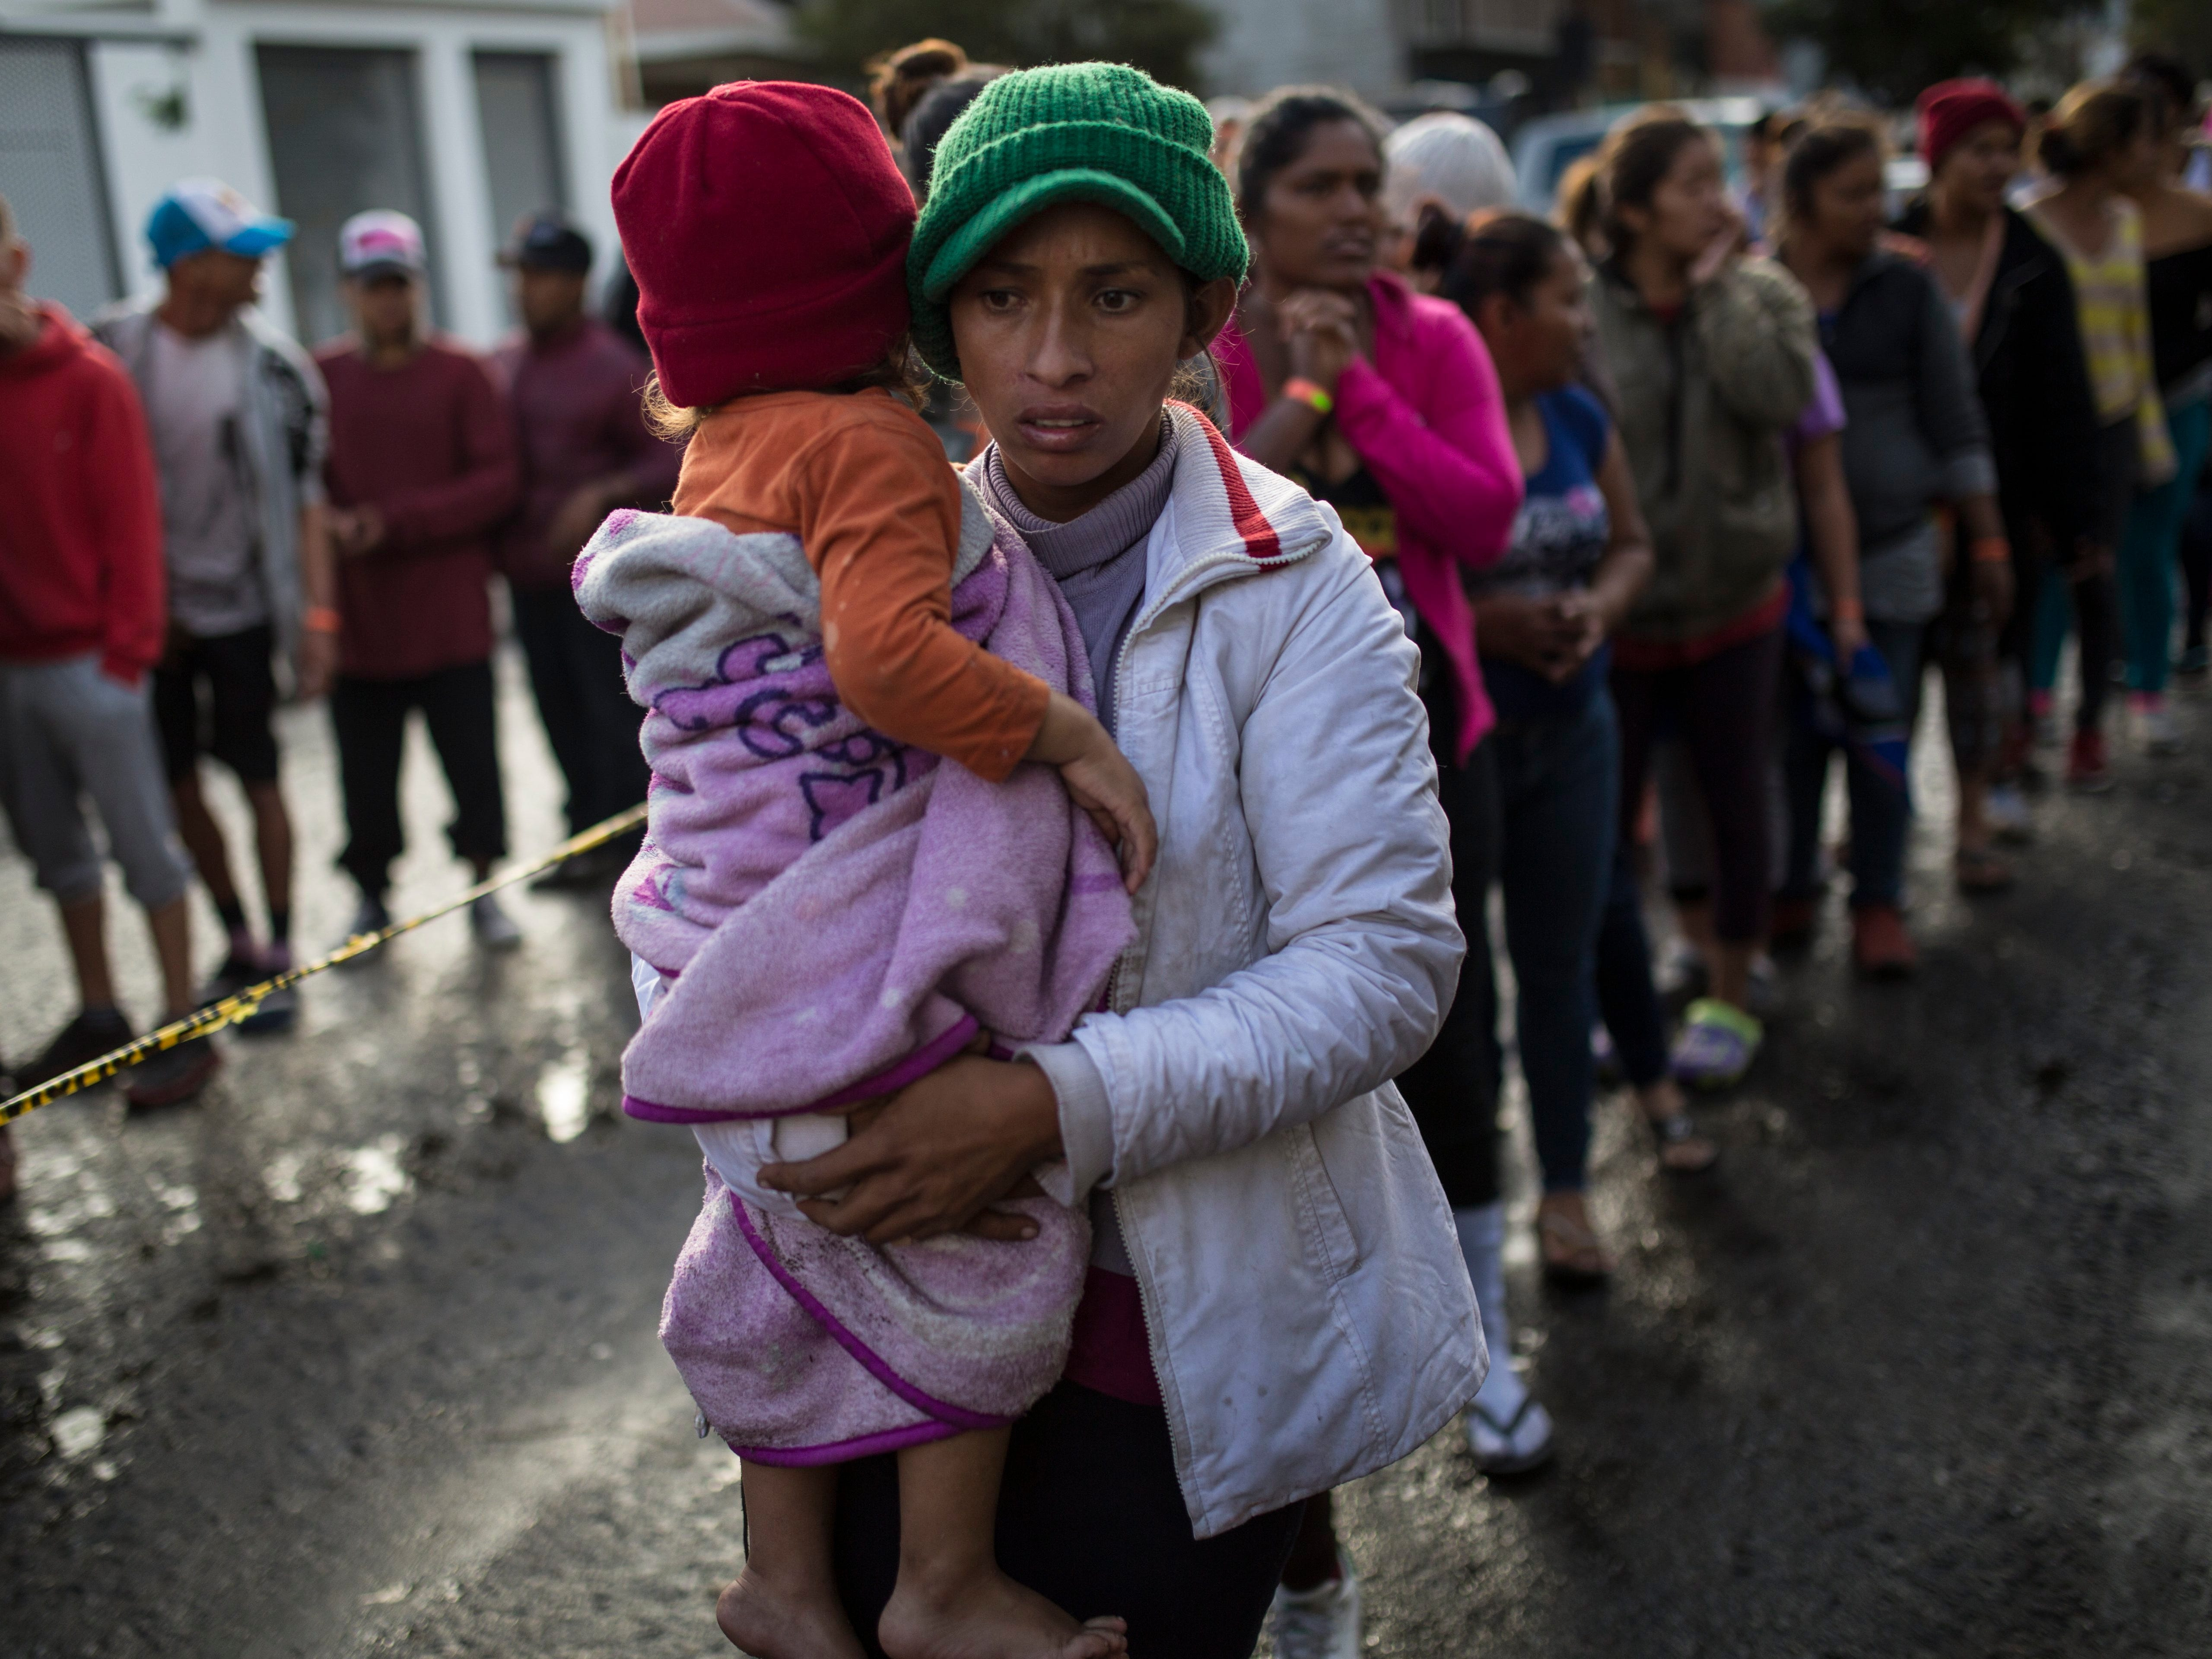 Maria del Carmen Mejia holds her daughter Britany Sofia while standing in a line outside a migrant shelter in Tijuana, Mexico, on Nov. 22, 2018.